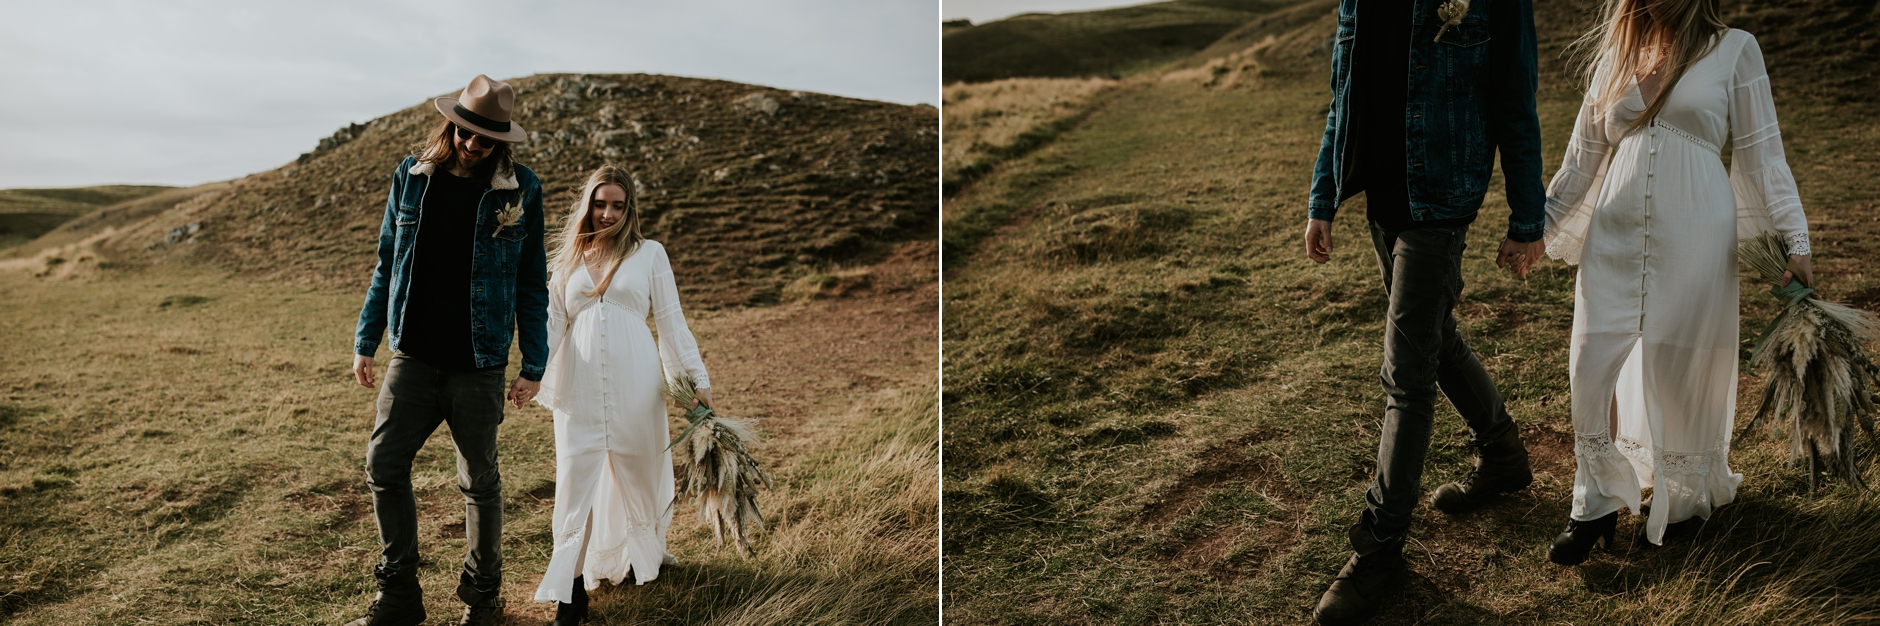 st abbs engagement photography